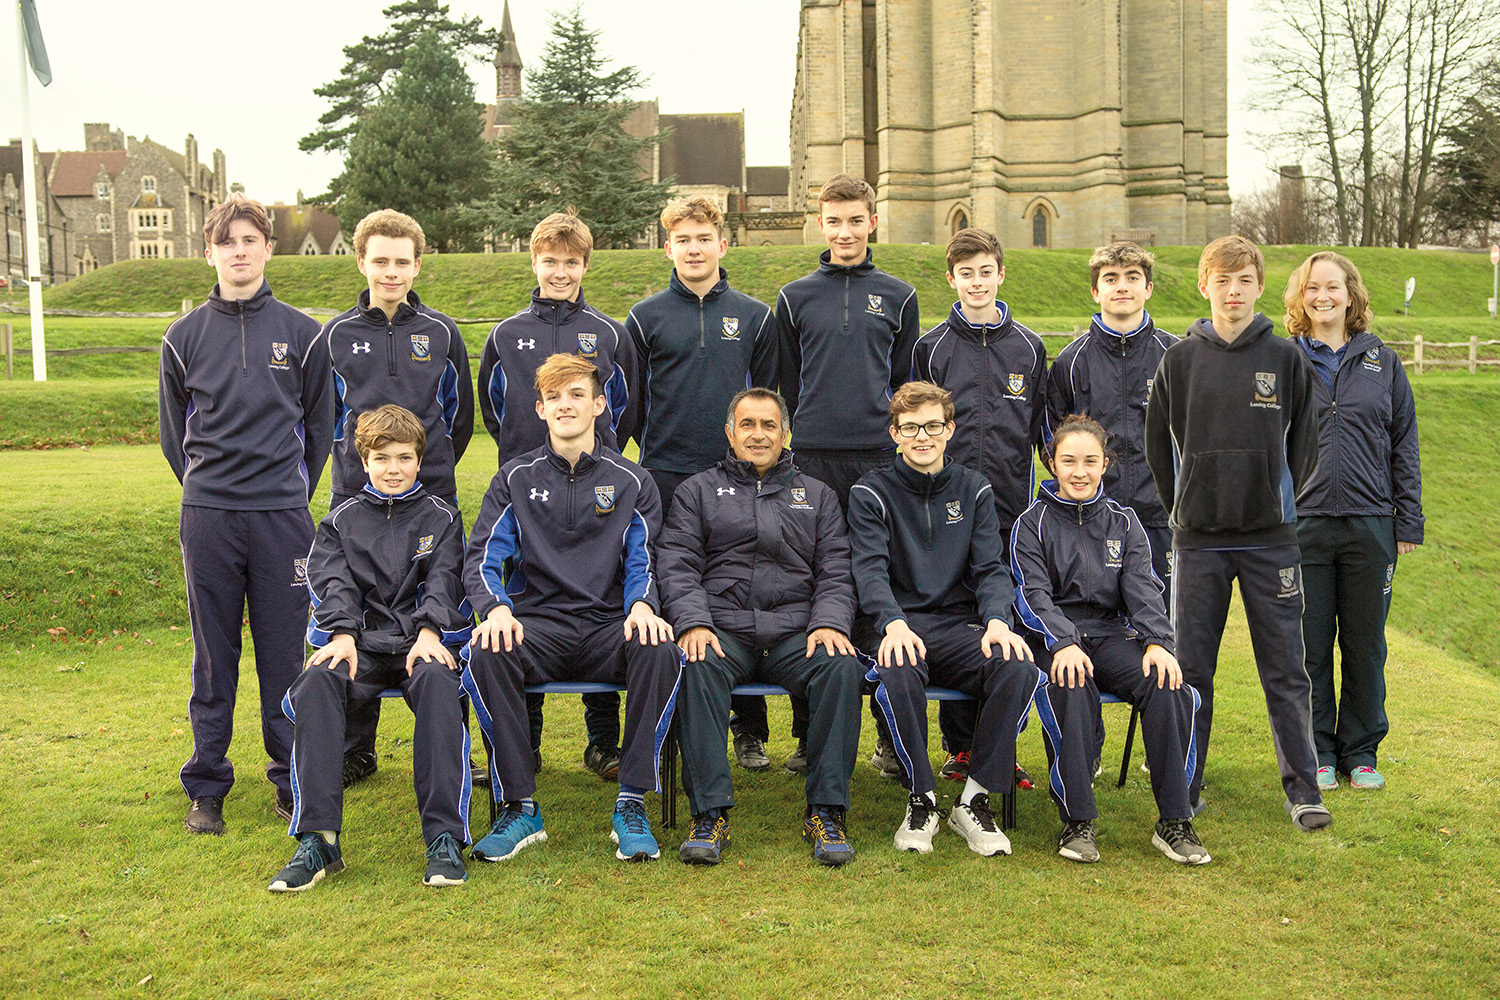 Lancing College Cricketers' Tour 2019